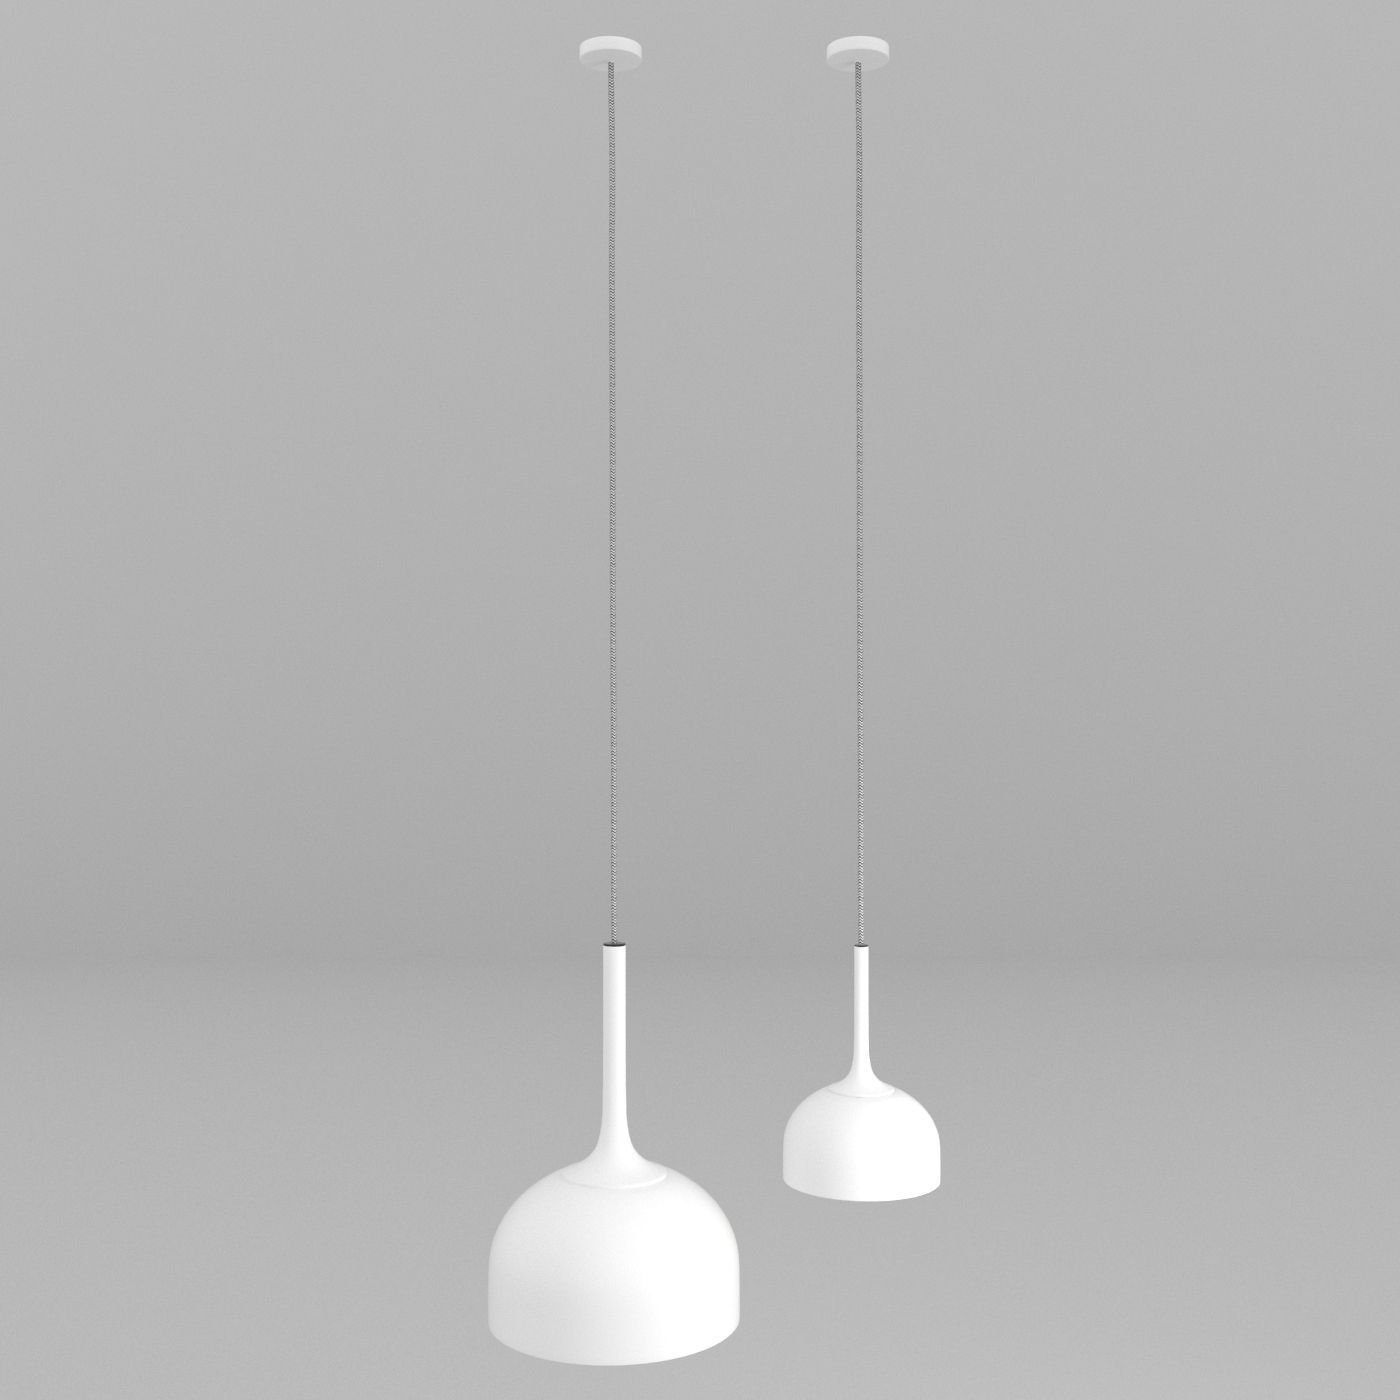 normann copenhagen hang lamp 3d model max obj 3ds fbx. Black Bedroom Furniture Sets. Home Design Ideas